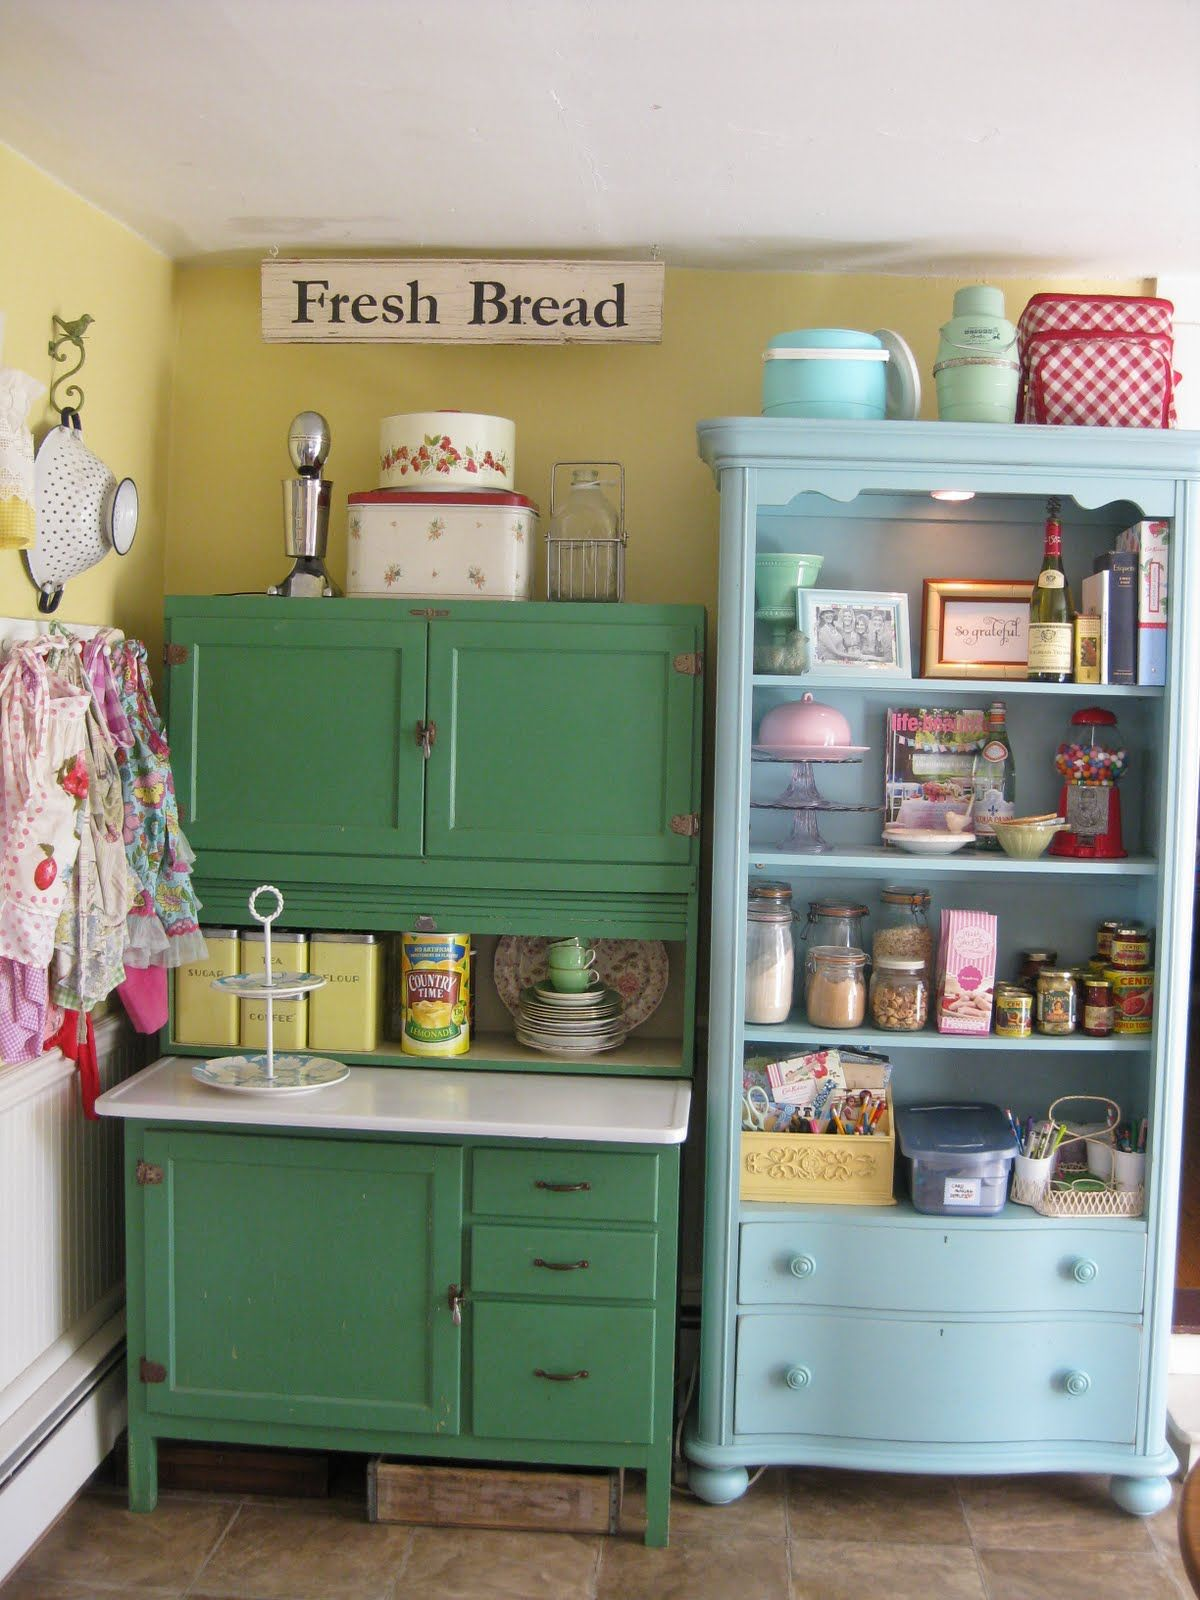 nice Retro Kitchen Decorating Ideas #7: Image Of Vintage Kitchen Decorating Ideas The Breakfast Nook Adds - Vintage  kitchen design